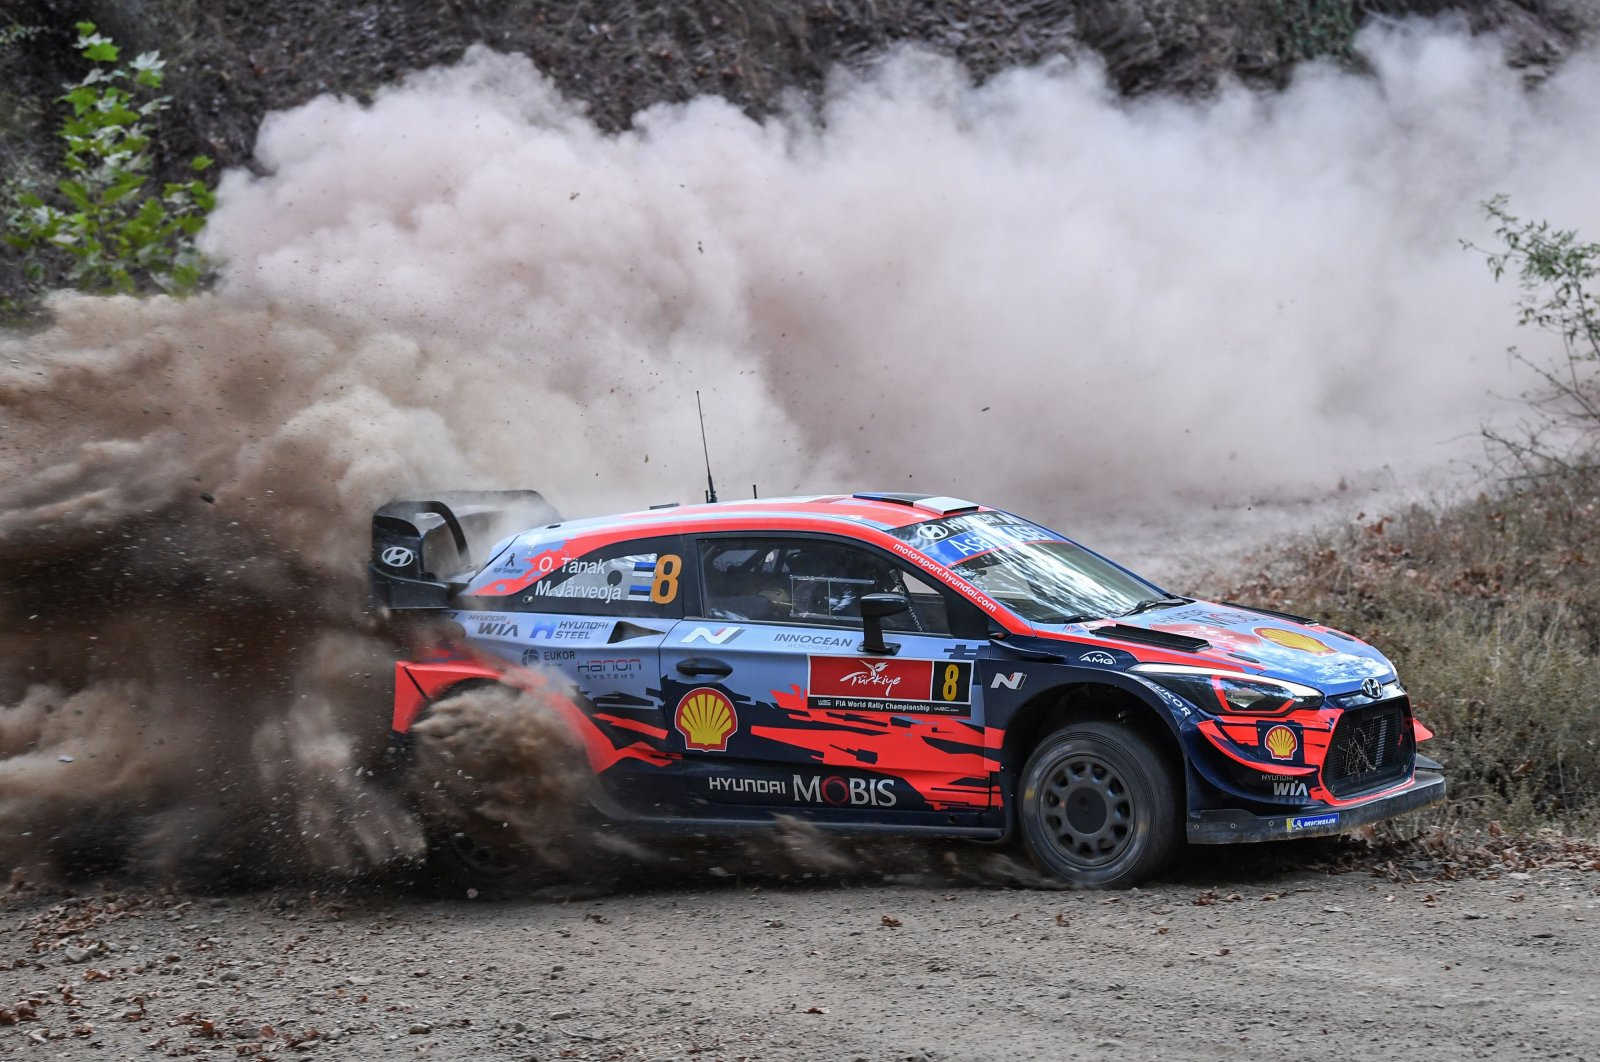 Ott Tanak of Estonia and his co-driver Martin Jarveoja steer their Hyundai i20 Coupe car during the Gökçe stage on the first day of the Rally Turkey as part of the World Rally Championship in Marmaris, Sept. 18, 2020. (AFP Photo)